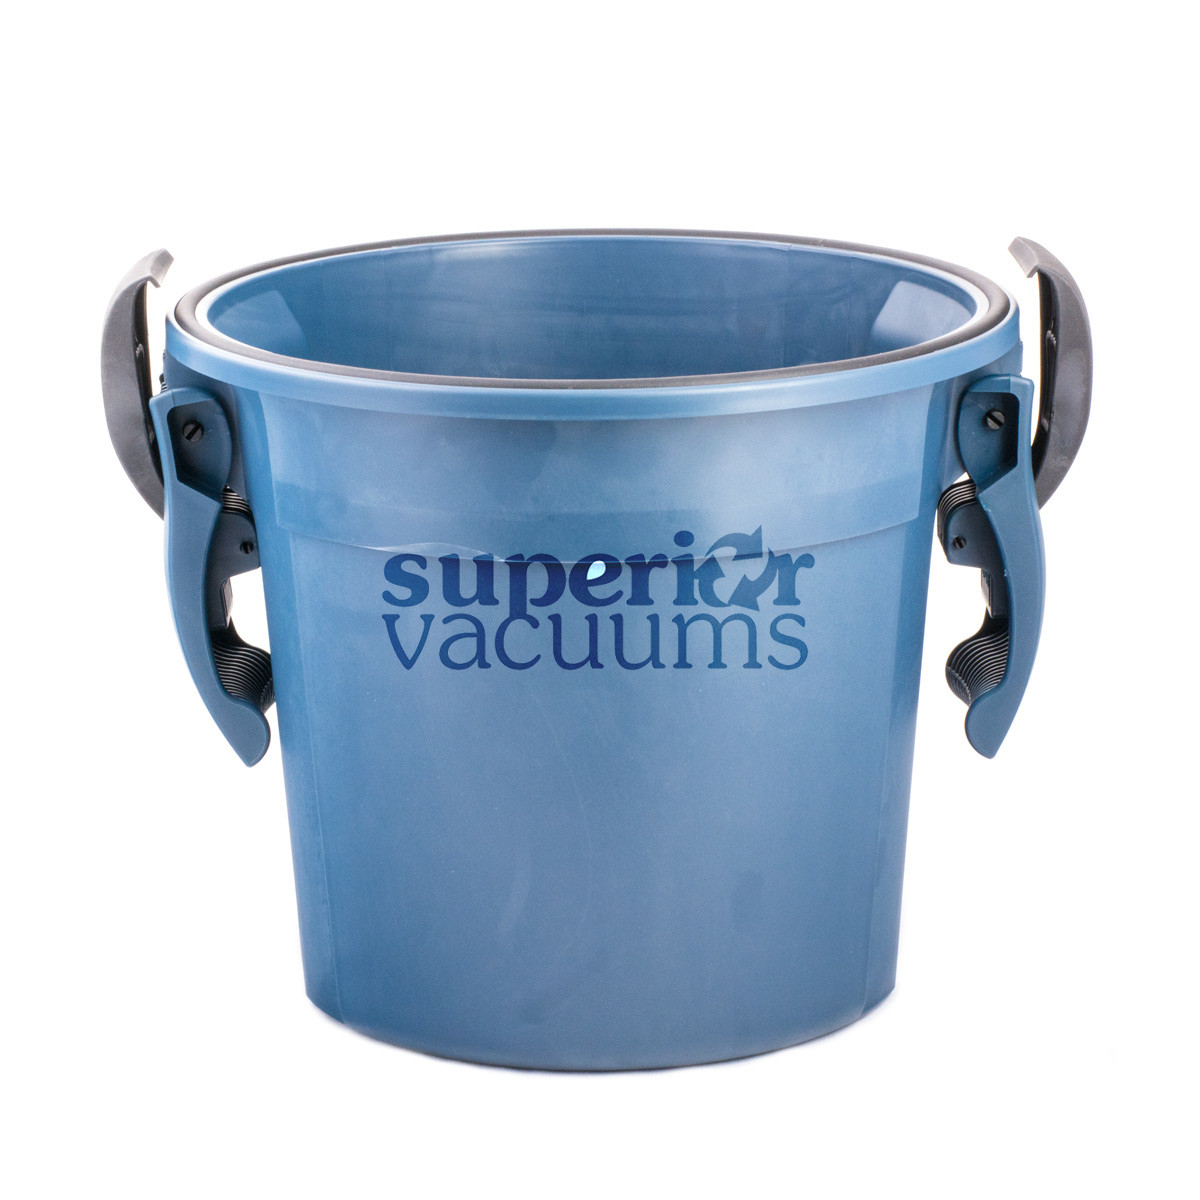 Bucket For Tubo Models Tc1 Tc2 Complete With Clamps And Seal